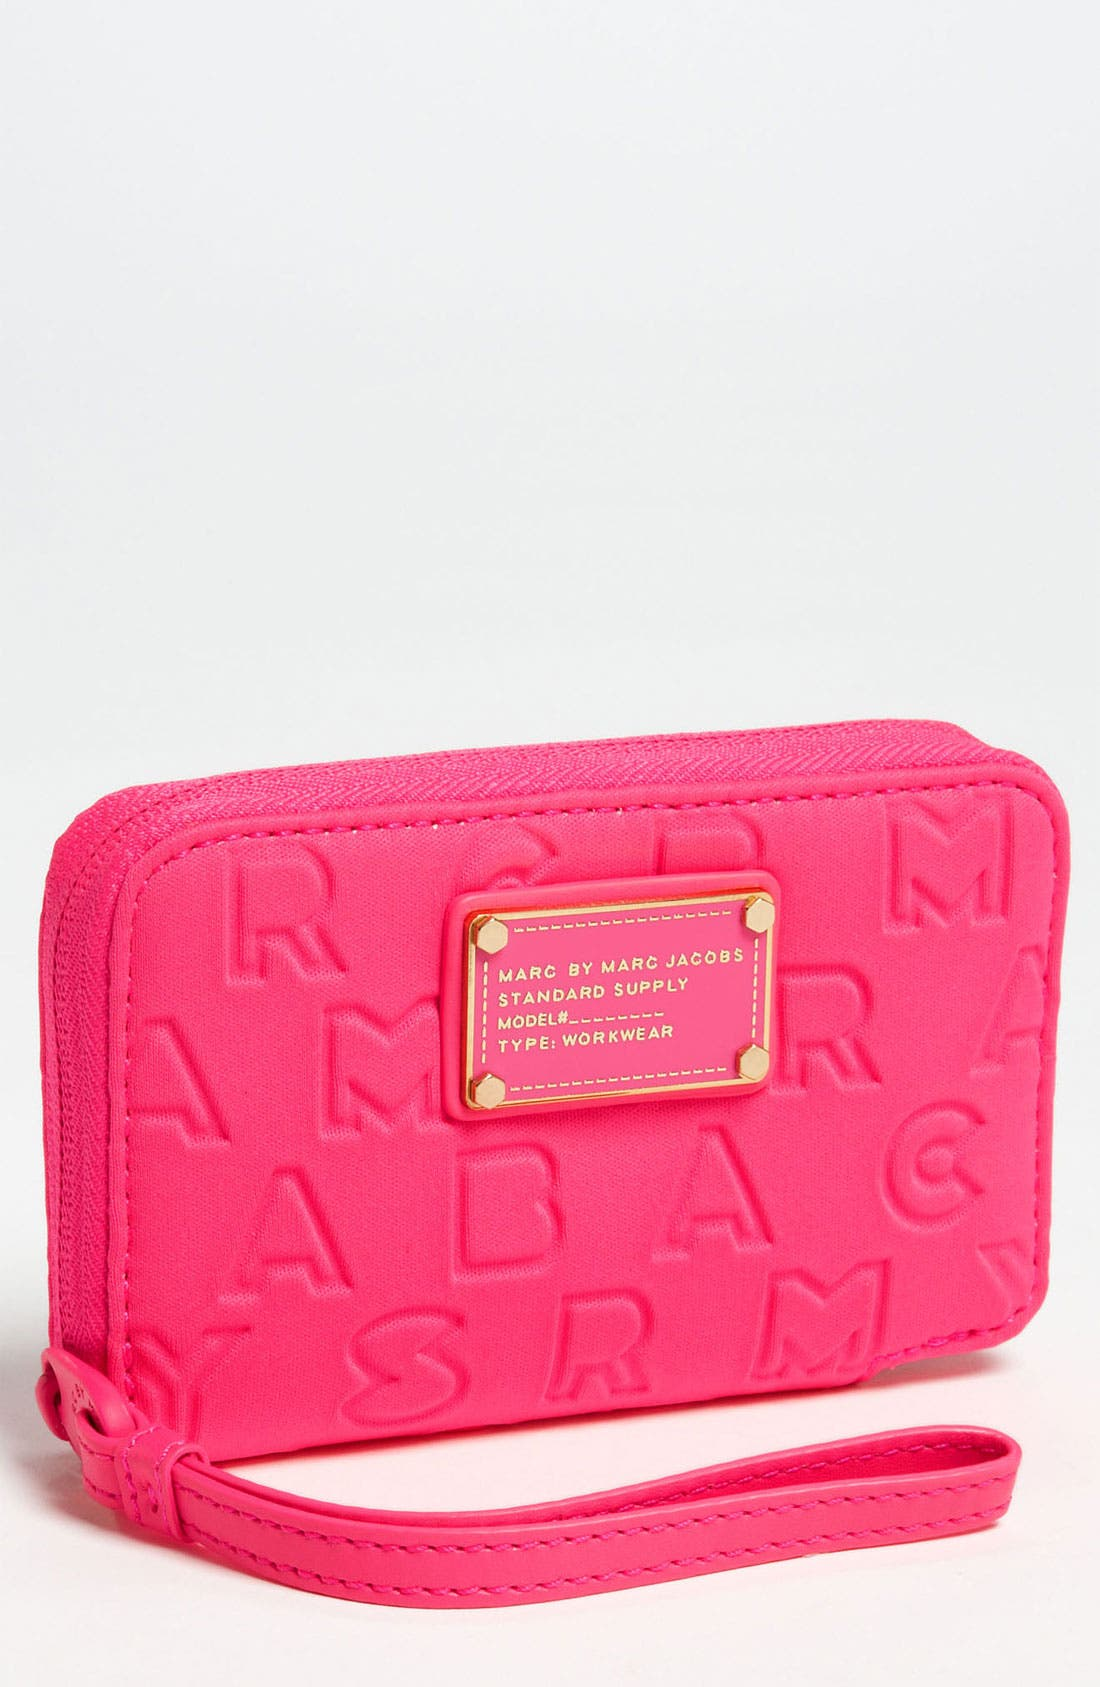 Main Image - MARC BY MARC JACOBS 'Dreamy Logo - Wingman' Phone Wallet